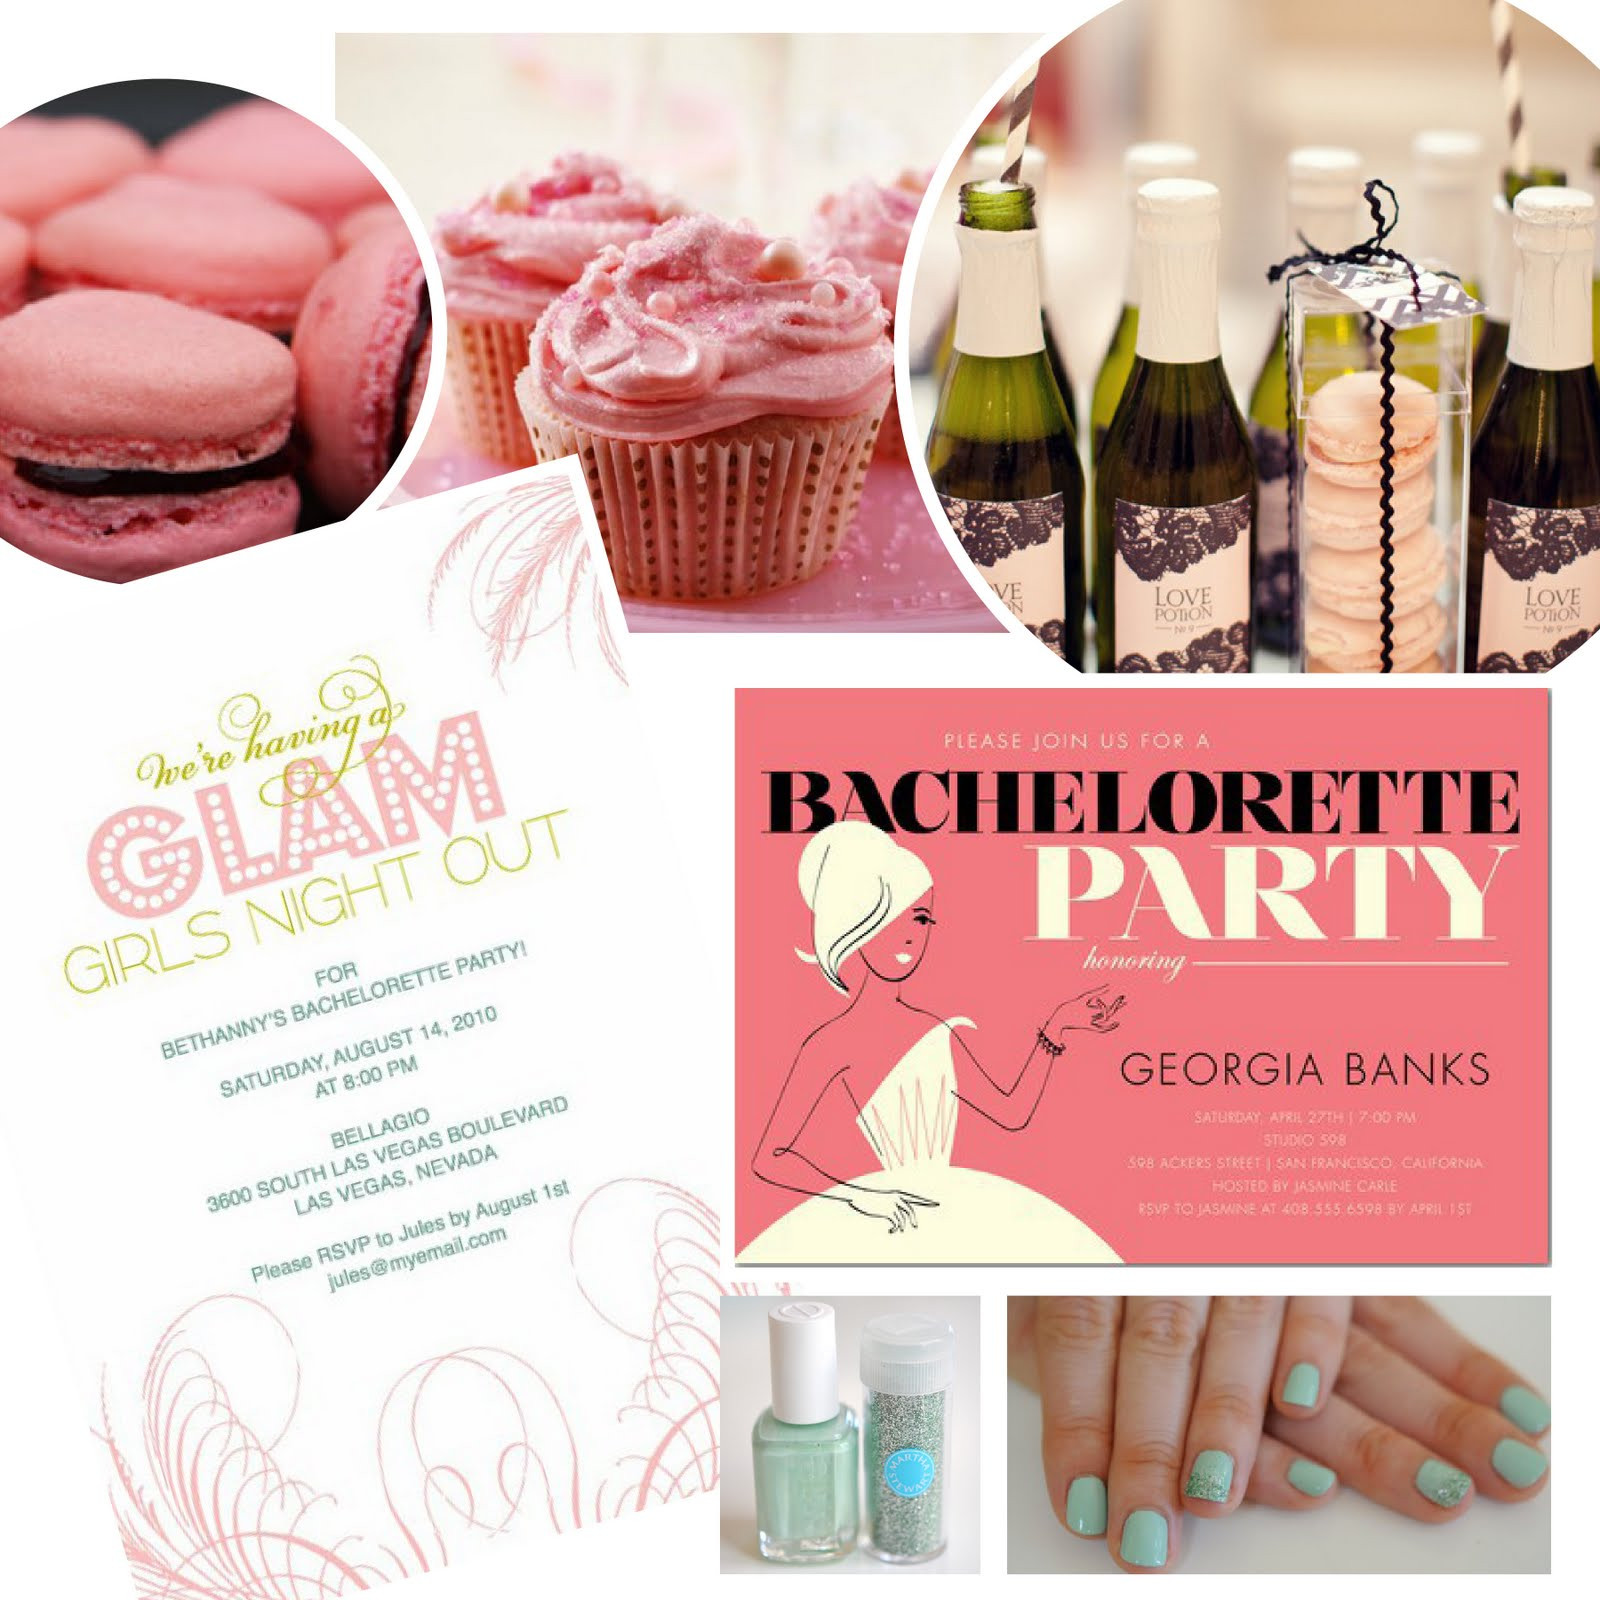 Great Bachelorette Party Ideas  Wedding Blog I m a Mrs Wedding Blog